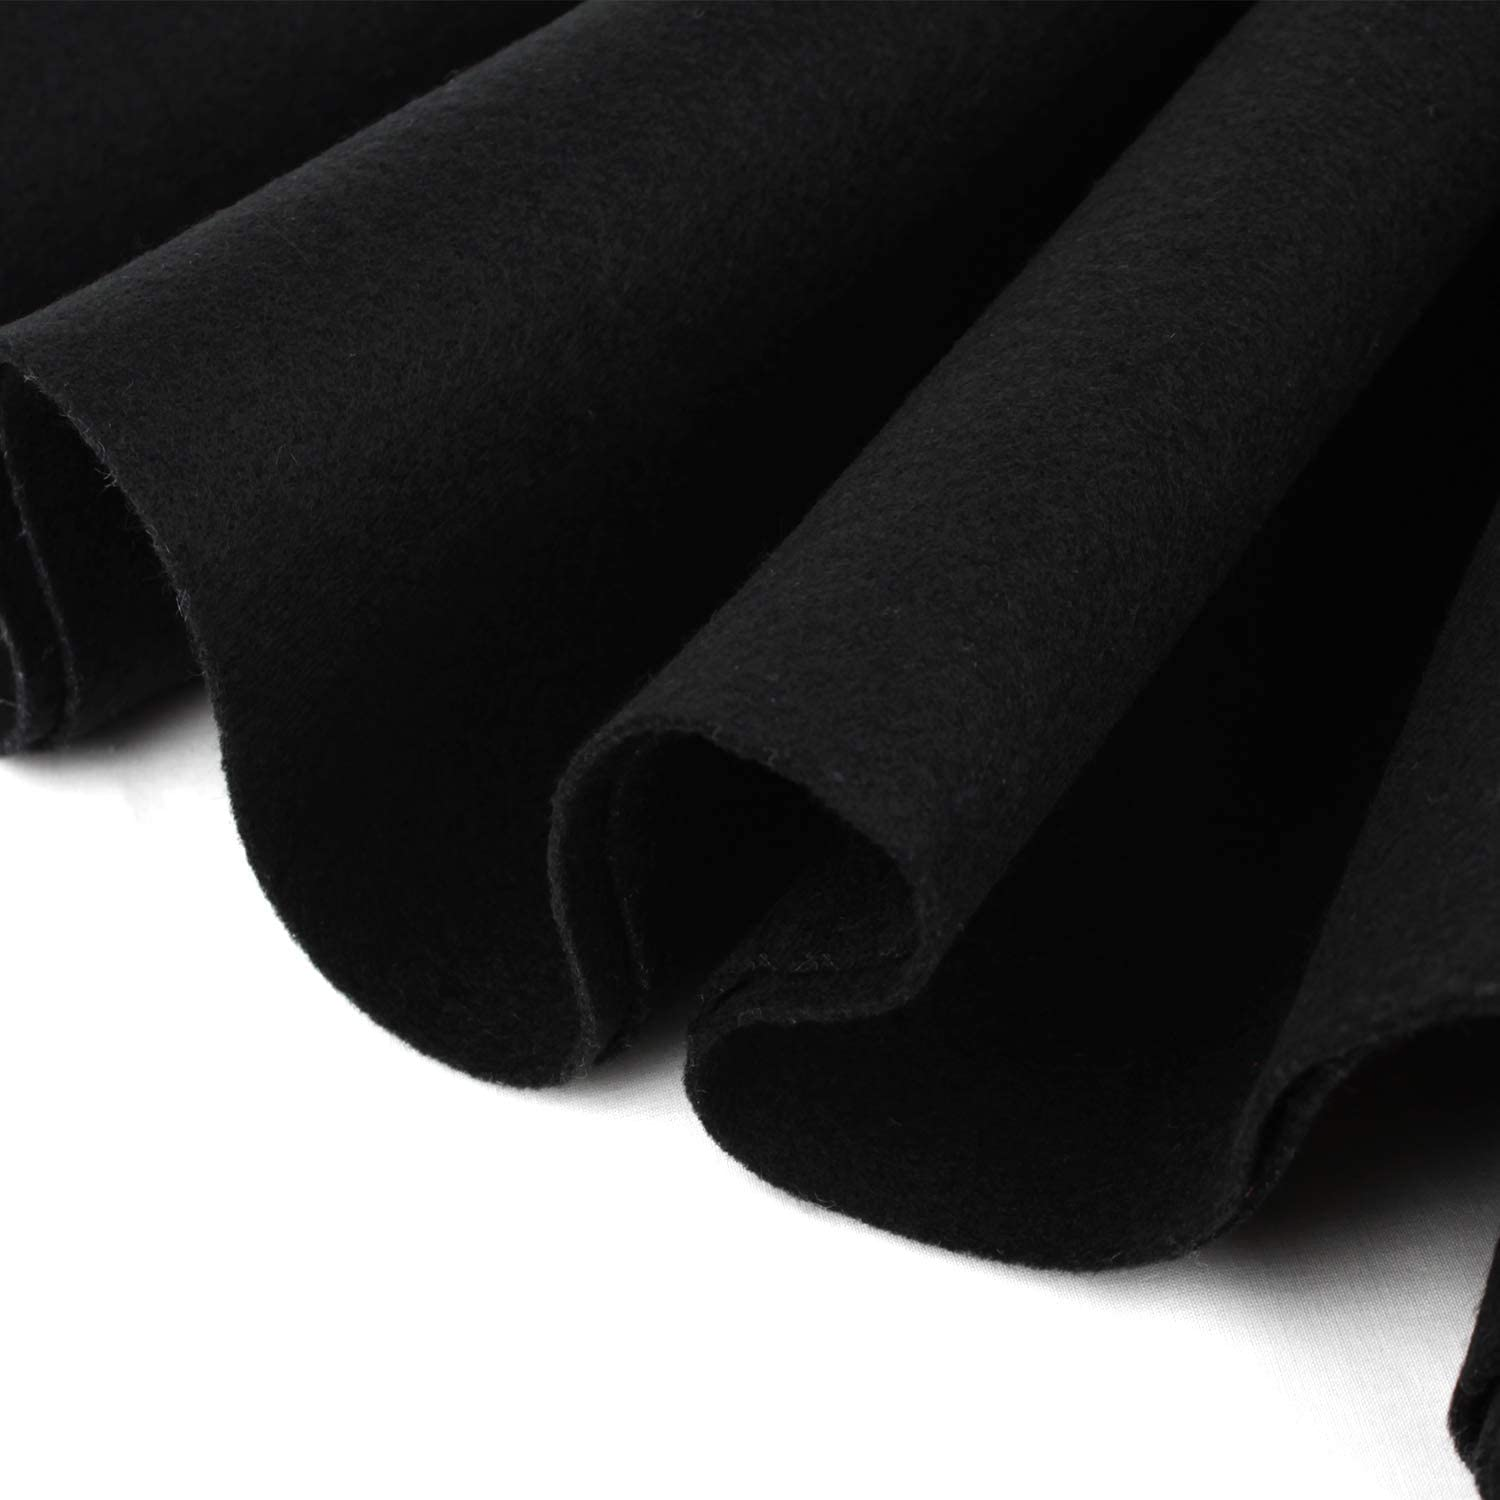 Barcelonetta Acrylic Felt Fabric New product 72'' 1.5mm Sales for sale Inch Wide Thic